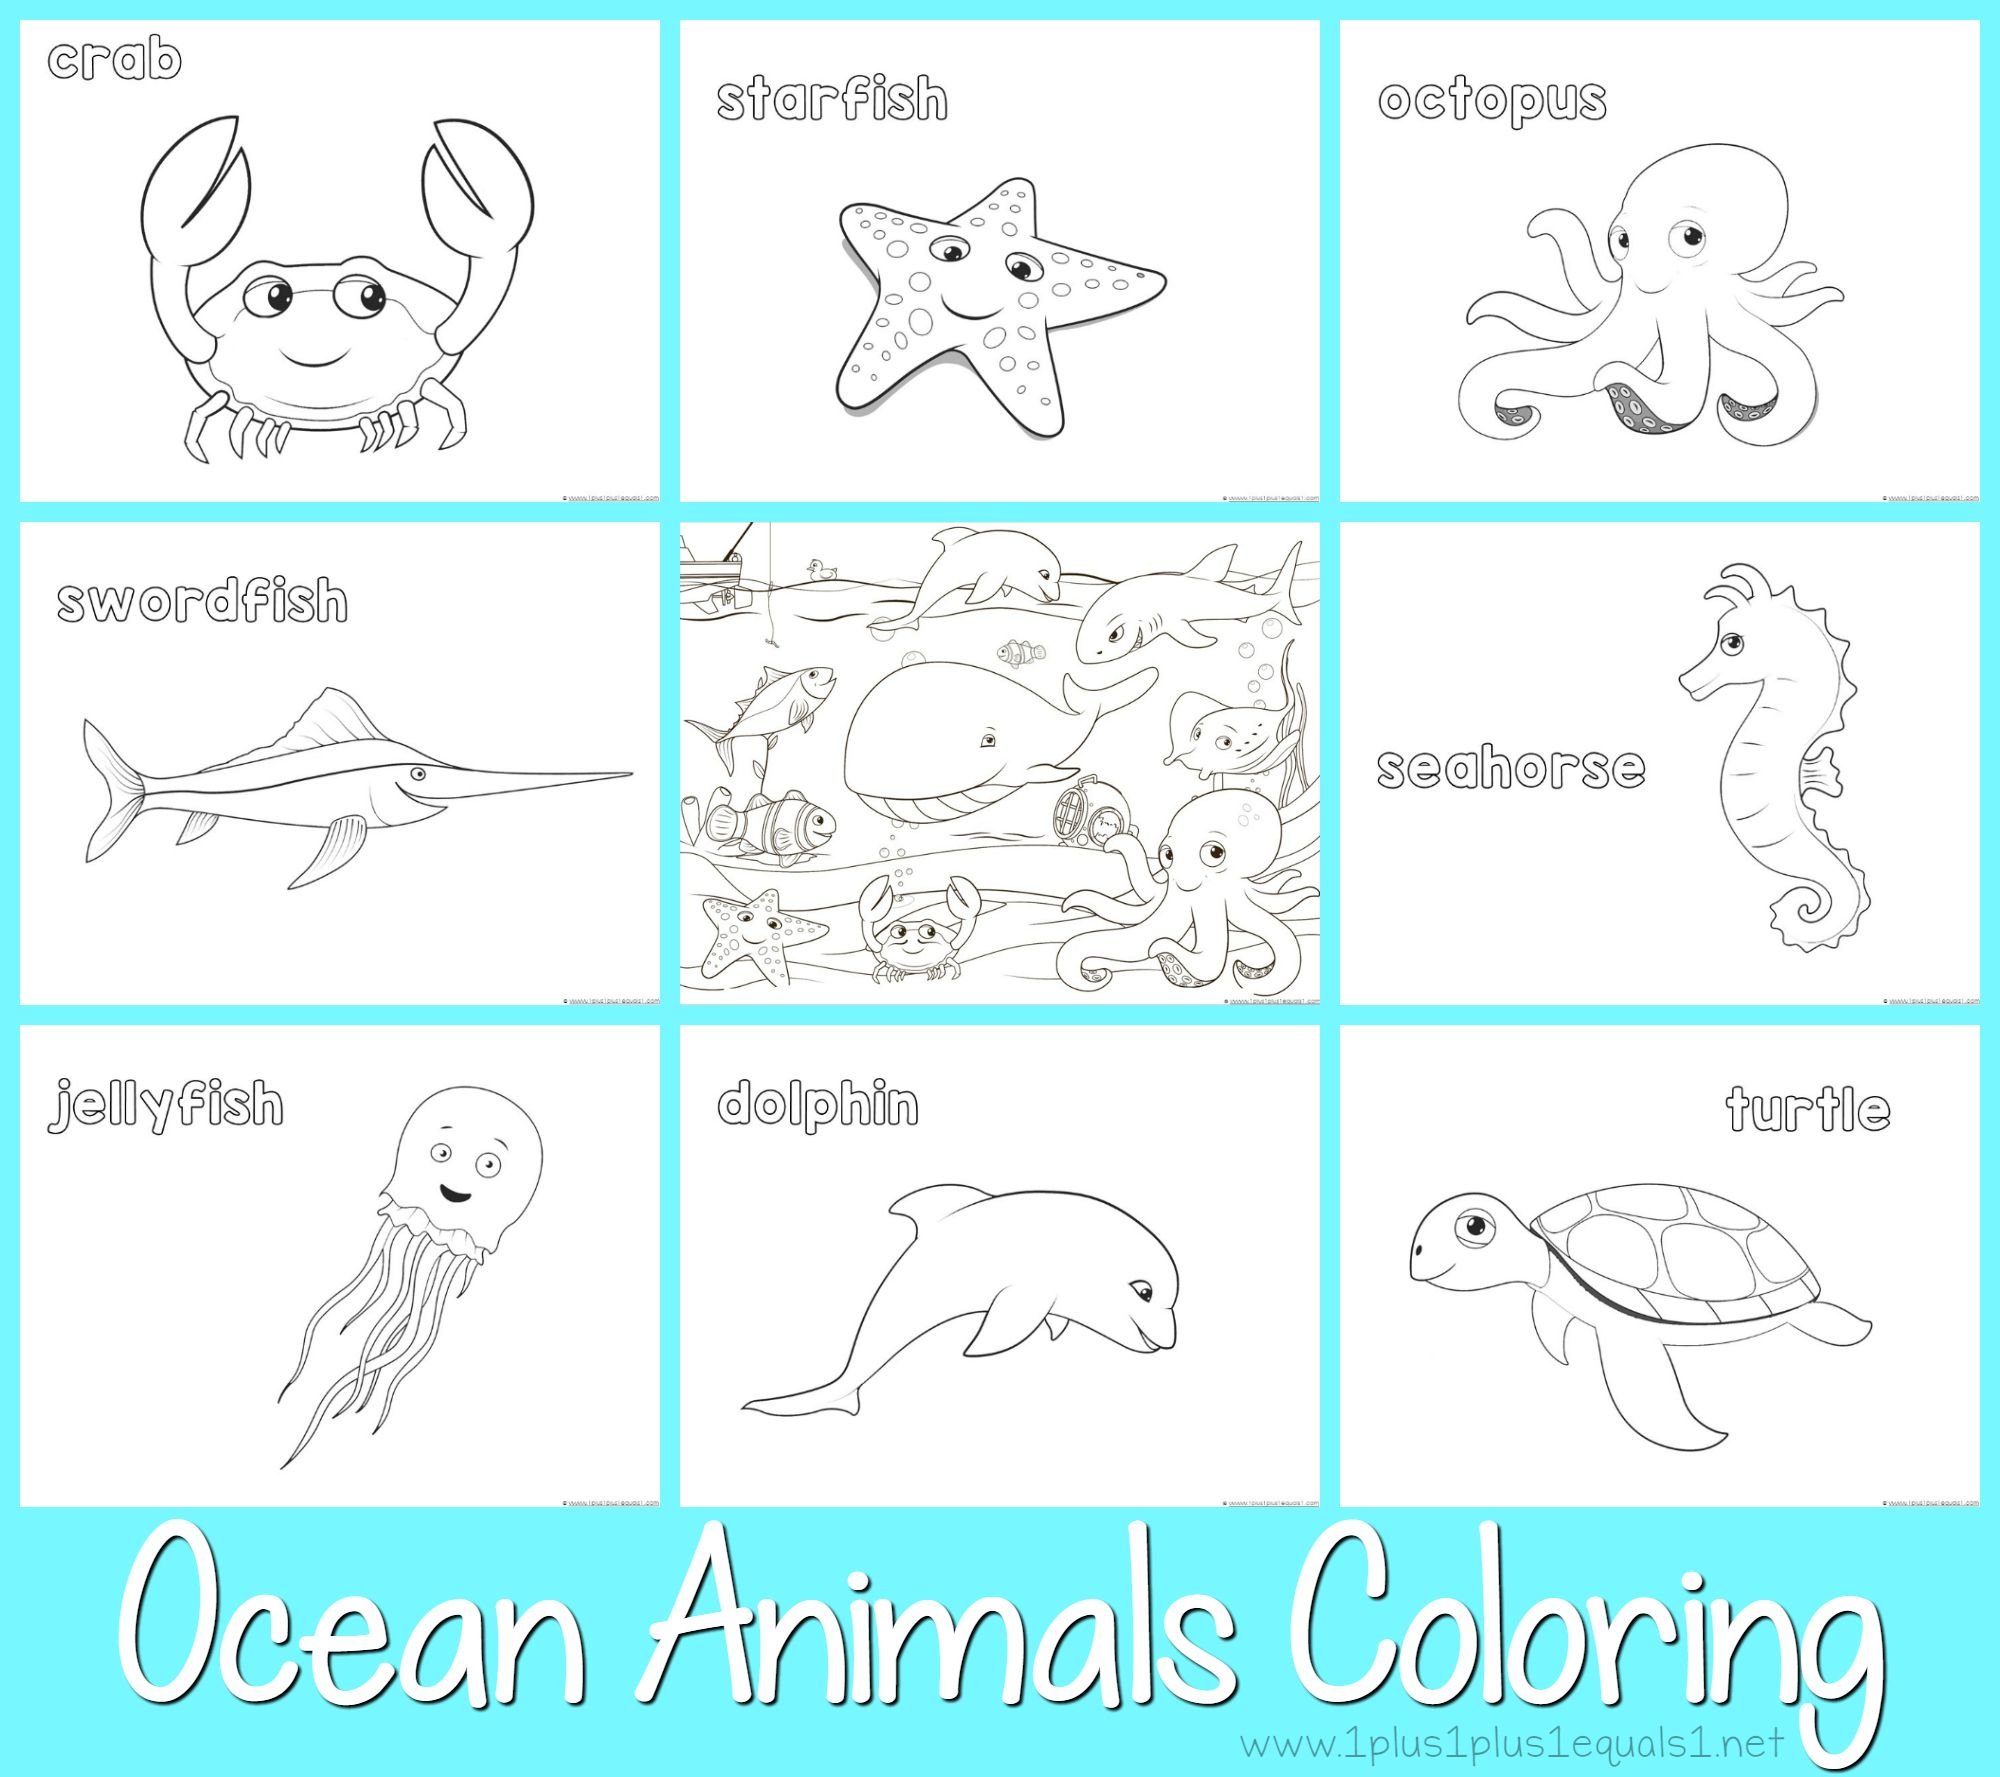 free coloring pages - many on this site | Coloring - Animals ...